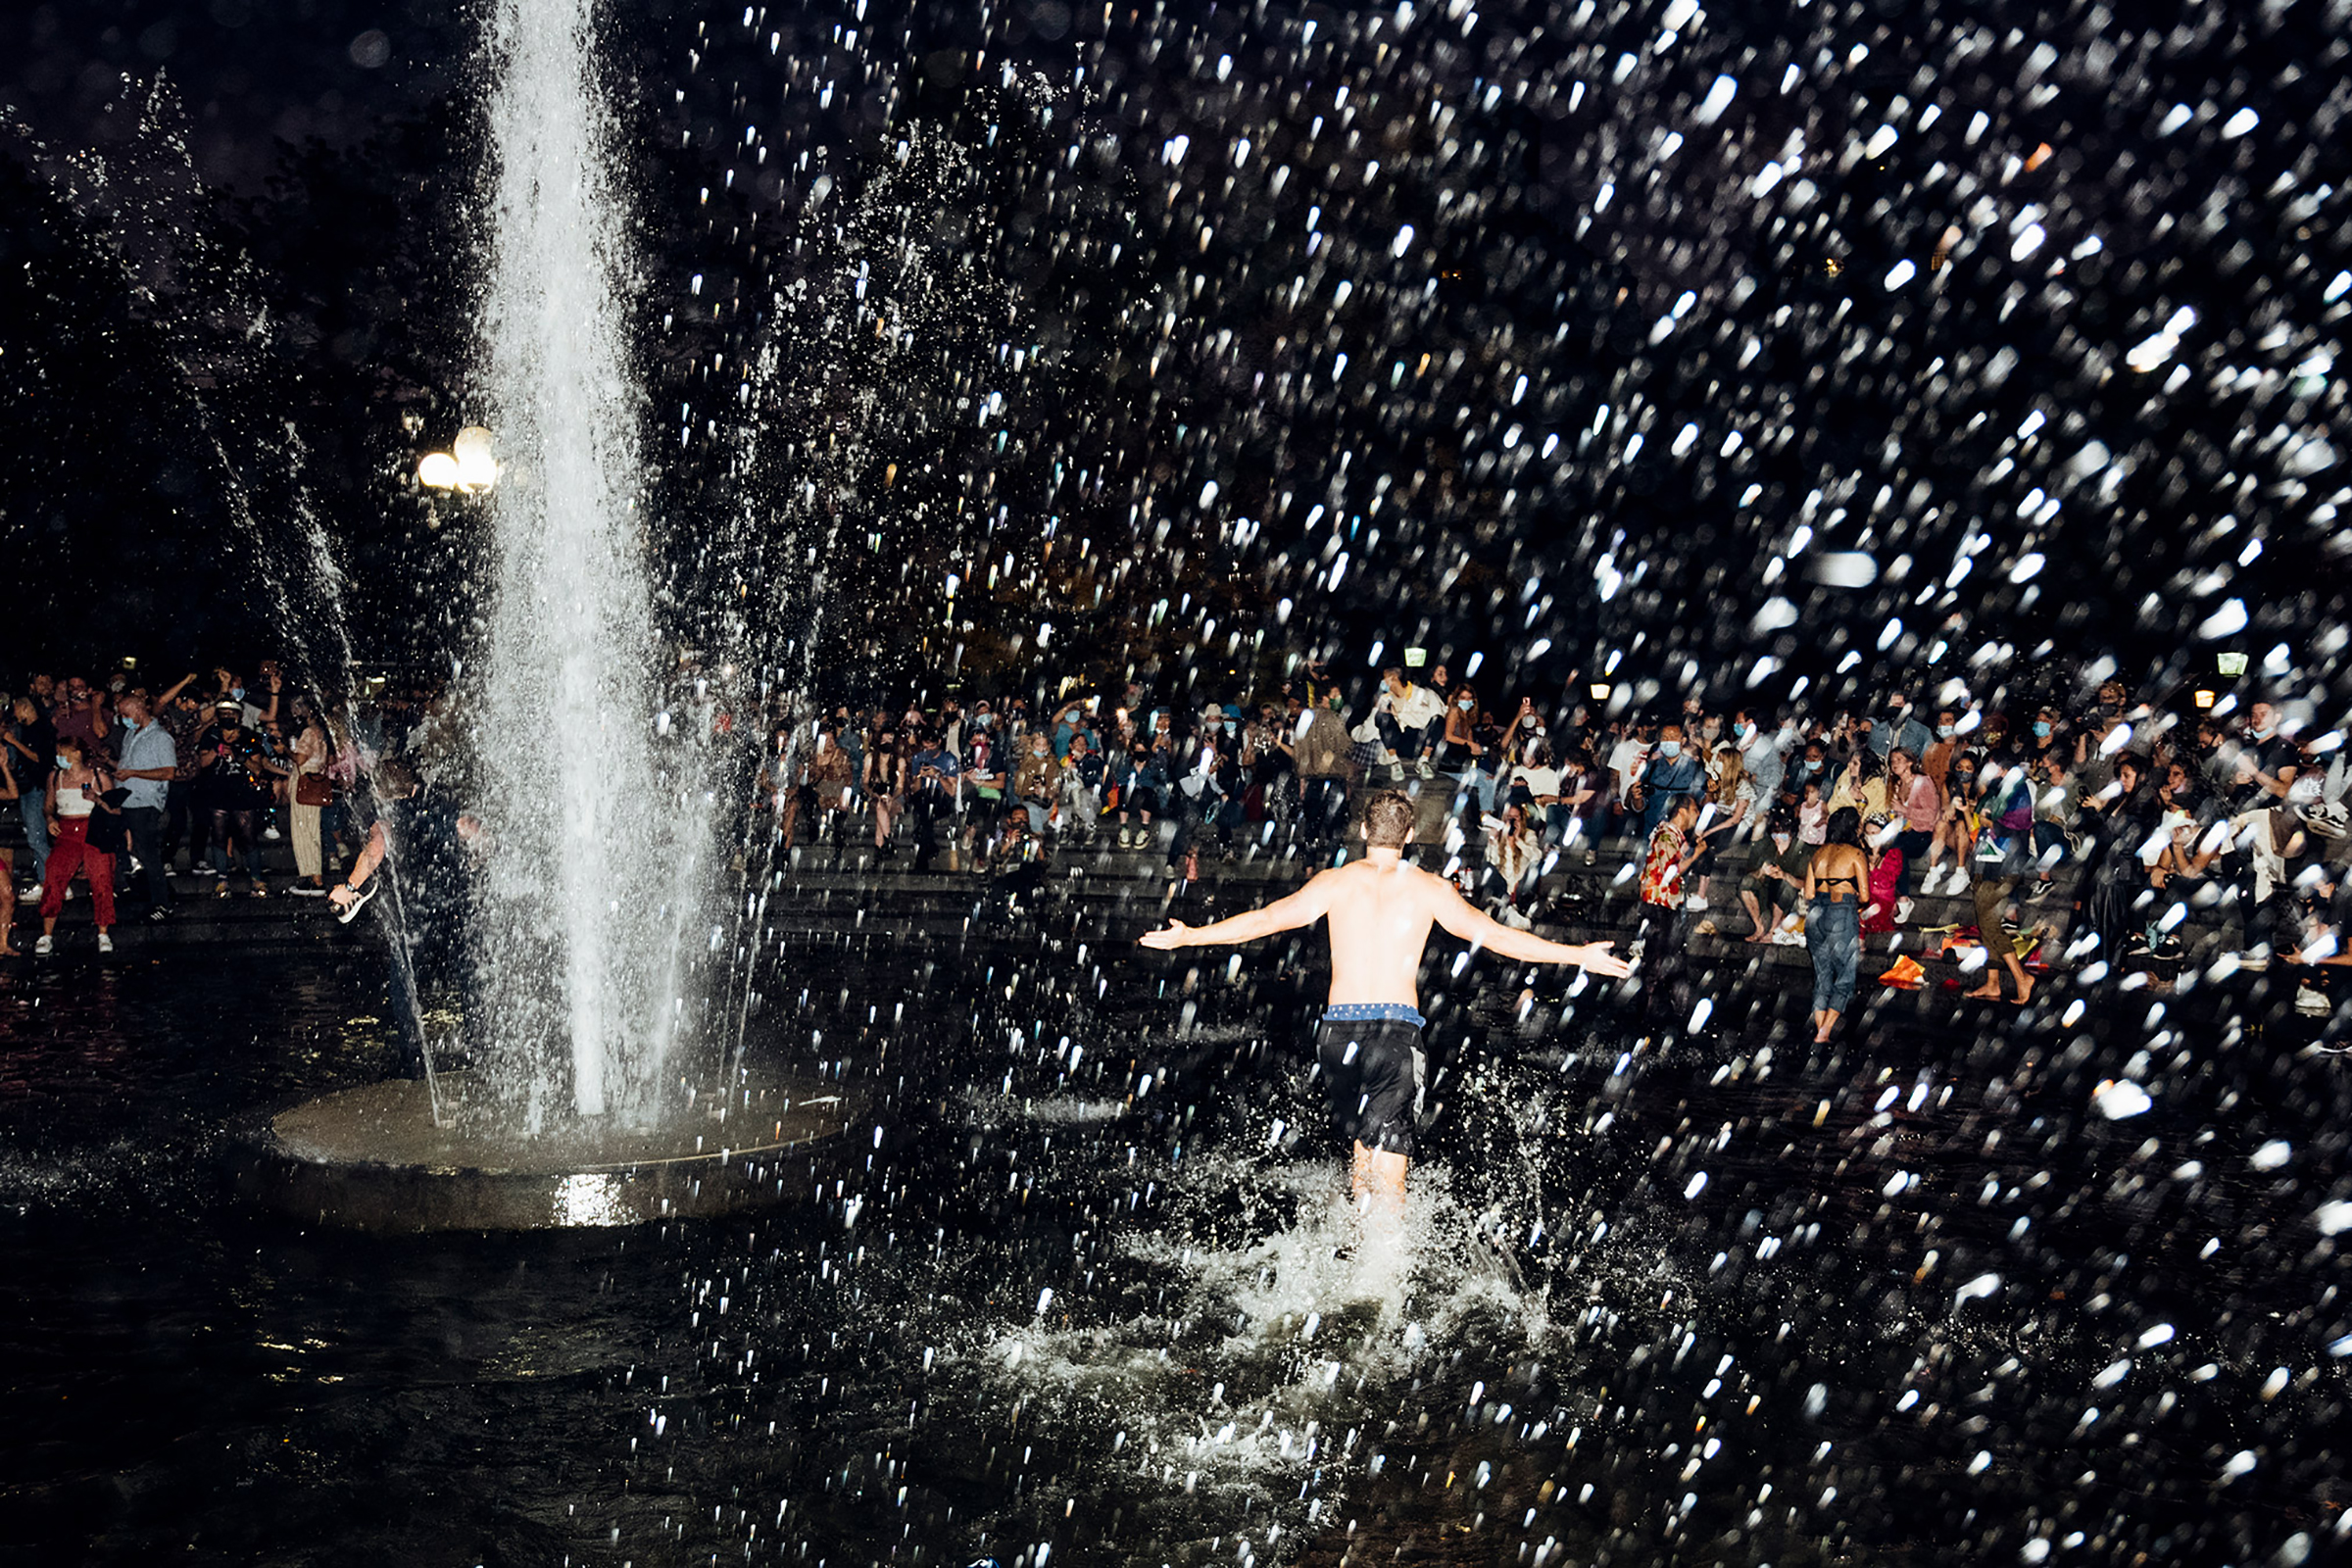 A man runs through the fountain in Washington Square Park in New York City on Nov. 7, after Joe Biden was declared the winner of the 2020 U.S. presidential election.